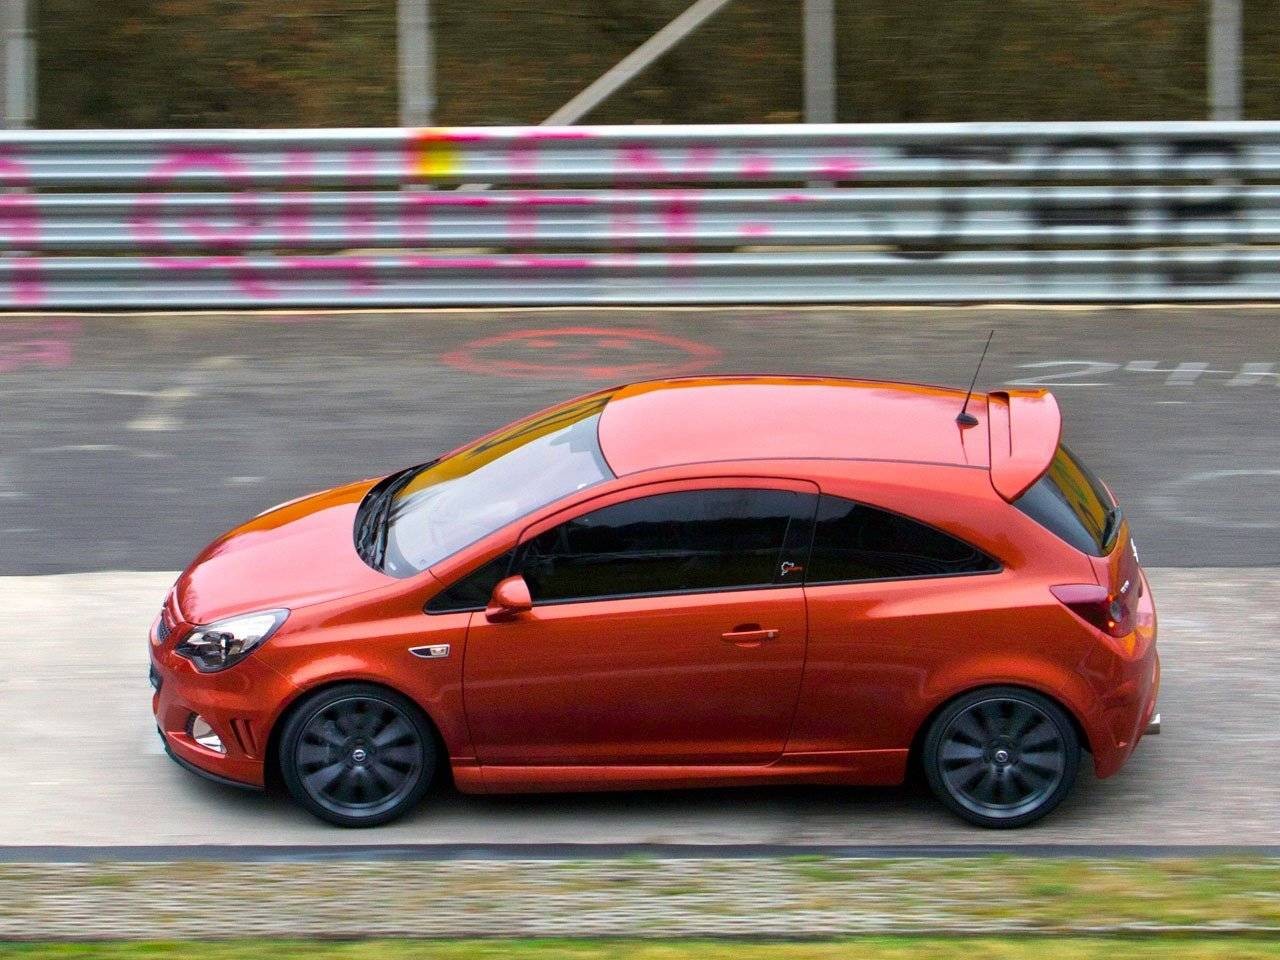 opel corsa opc n rburgring edition autonieuws. Black Bedroom Furniture Sets. Home Design Ideas